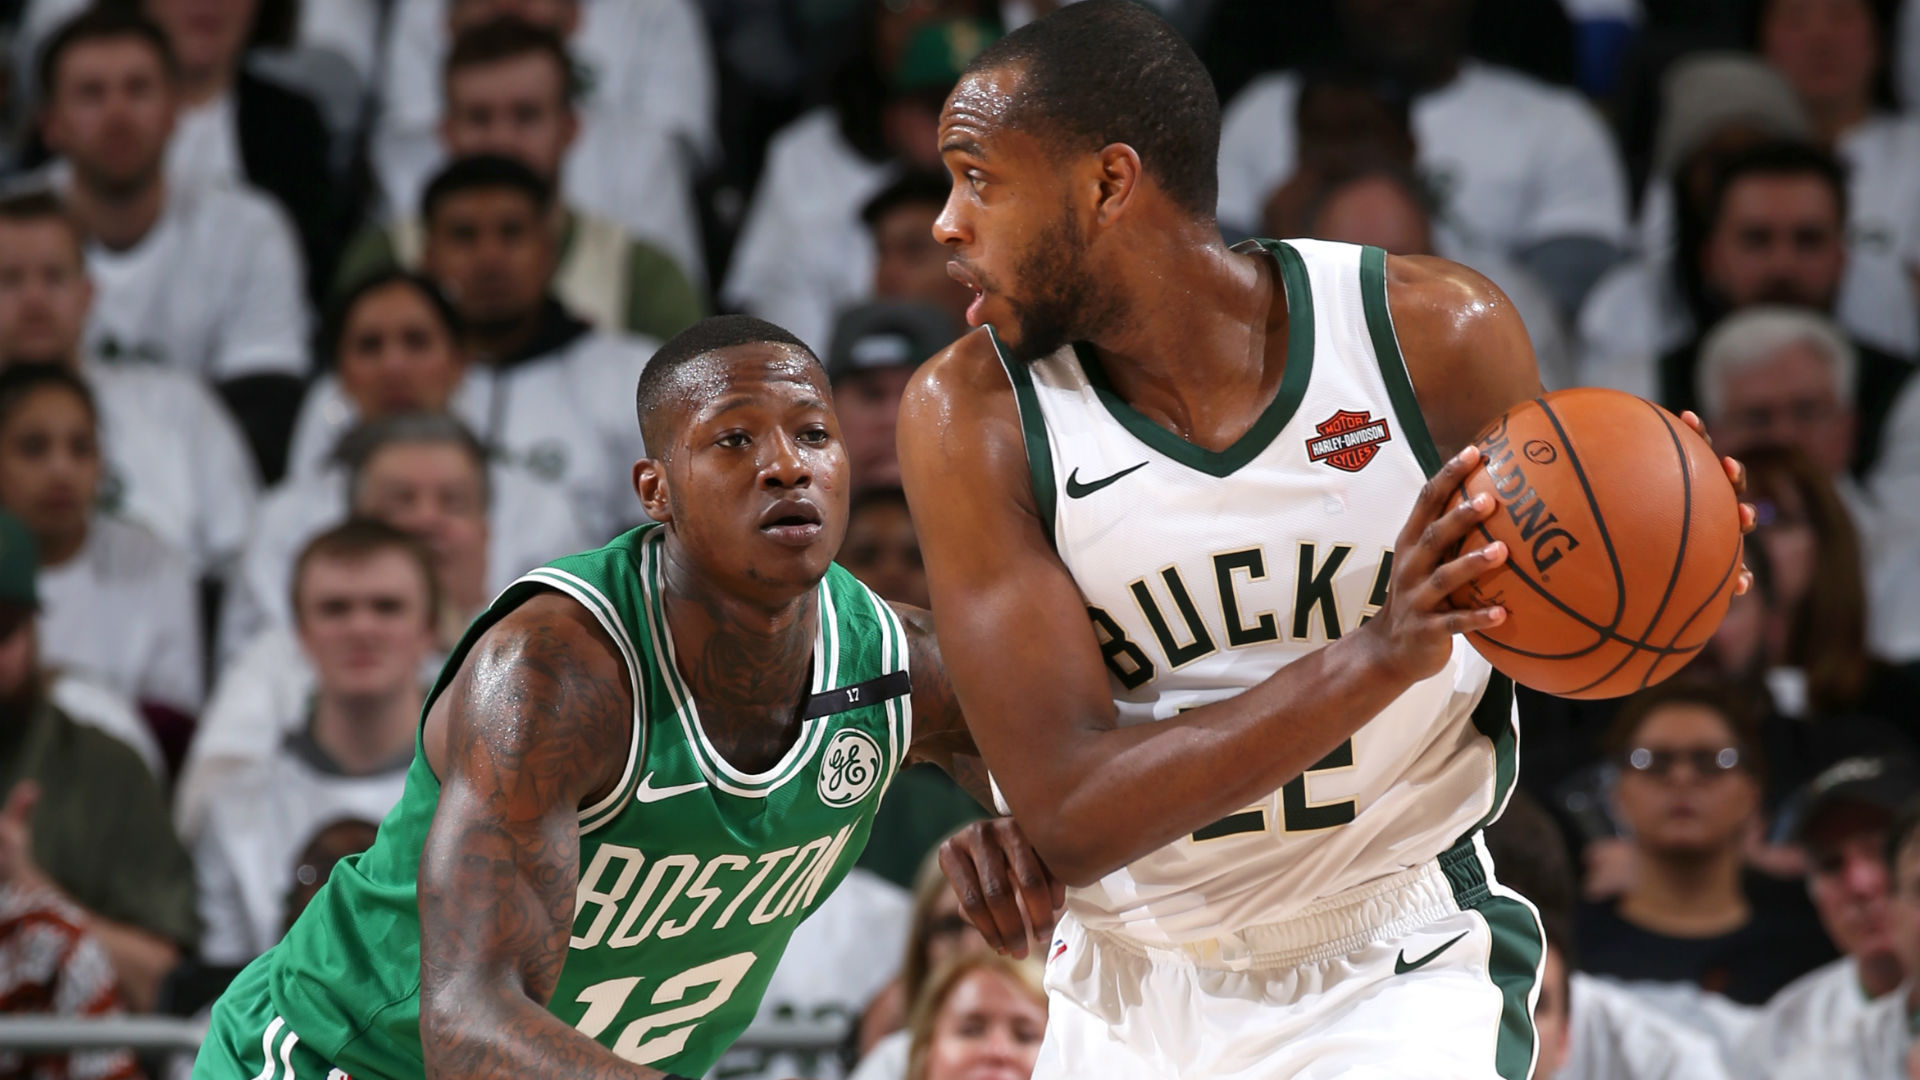 Nba Playoffs 2019 Milwaukee Bucks Vs Boston Celtics Live